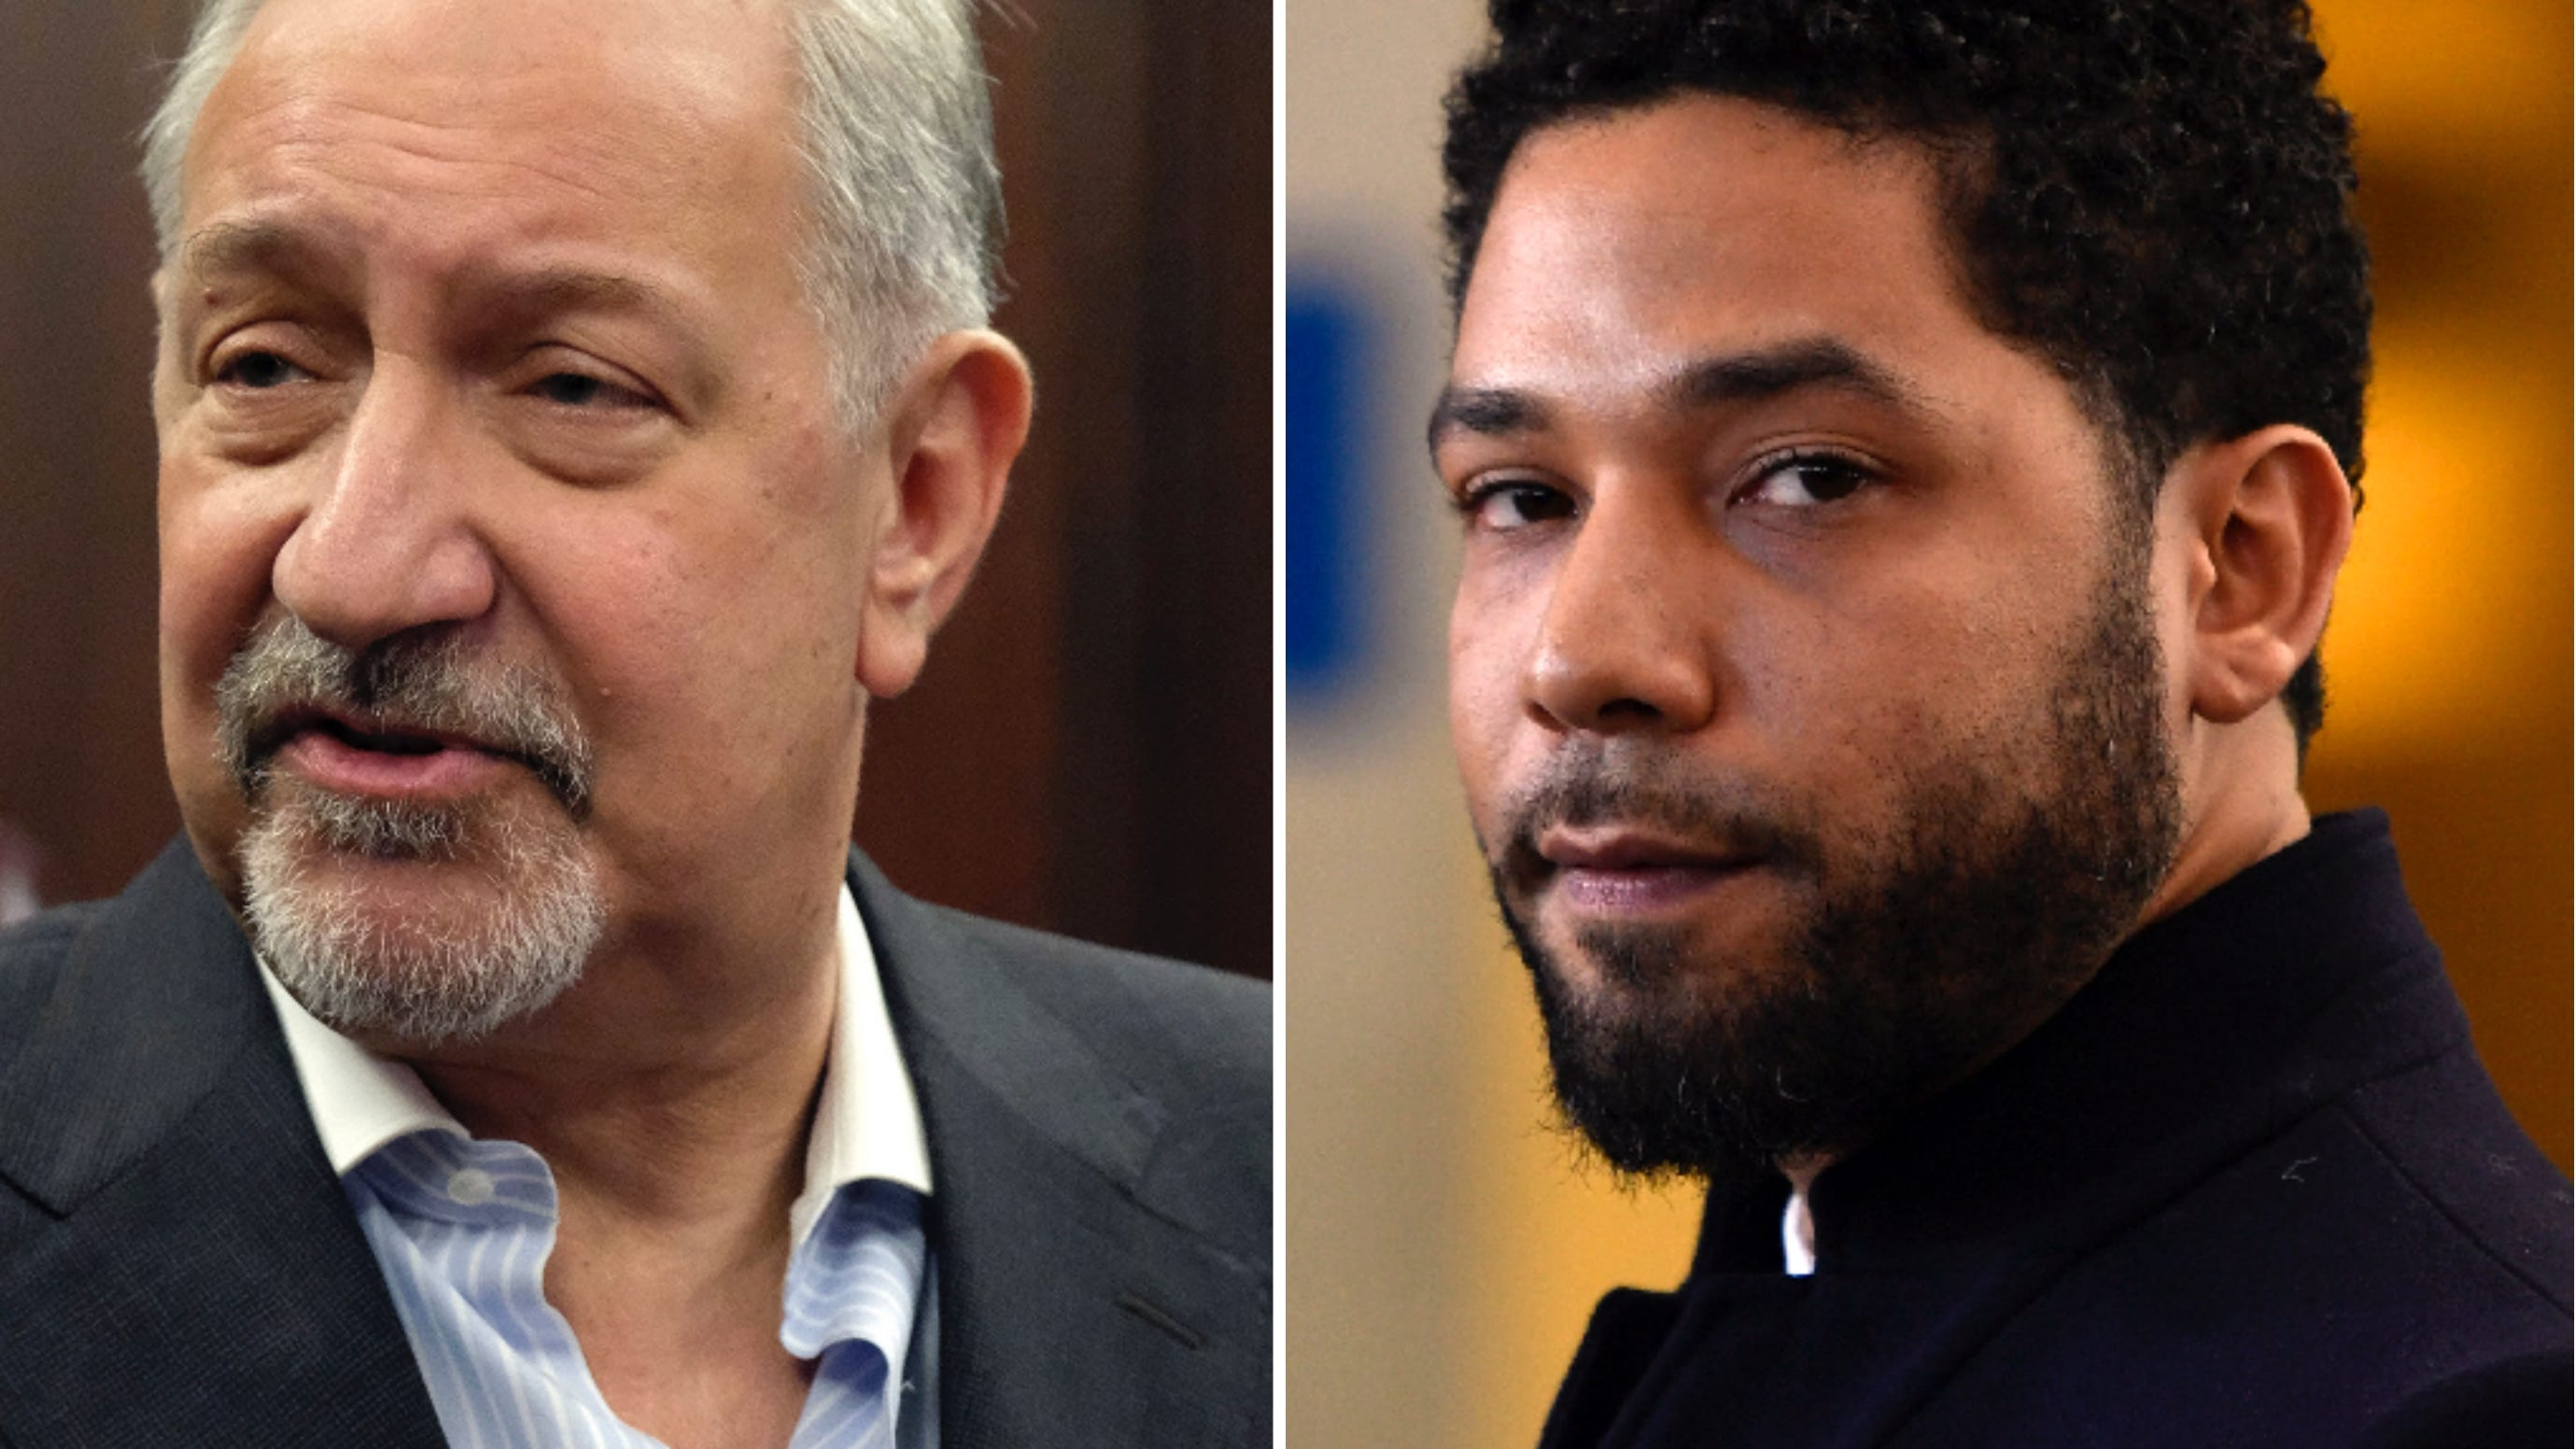 The brothers who say actor Jussie Smollett paid them to stage his January assault are now suing his legal team for defamation.